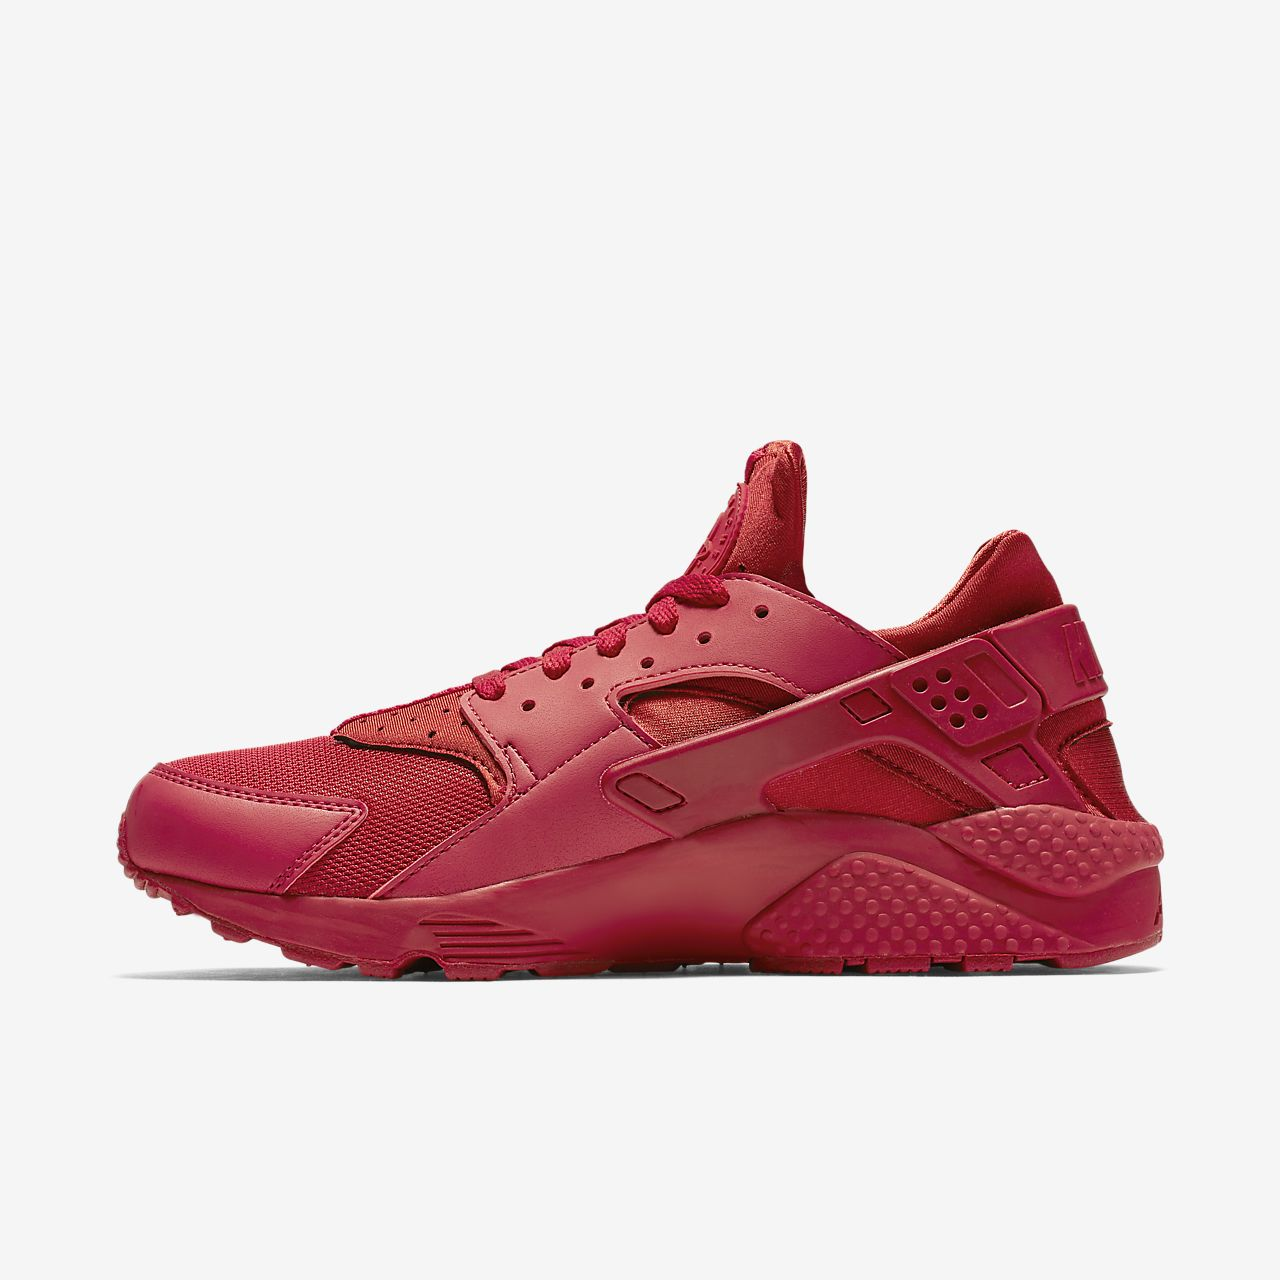 new product 8c2a0 f0fc5 ... Nike Air Huarache Men s Shoe